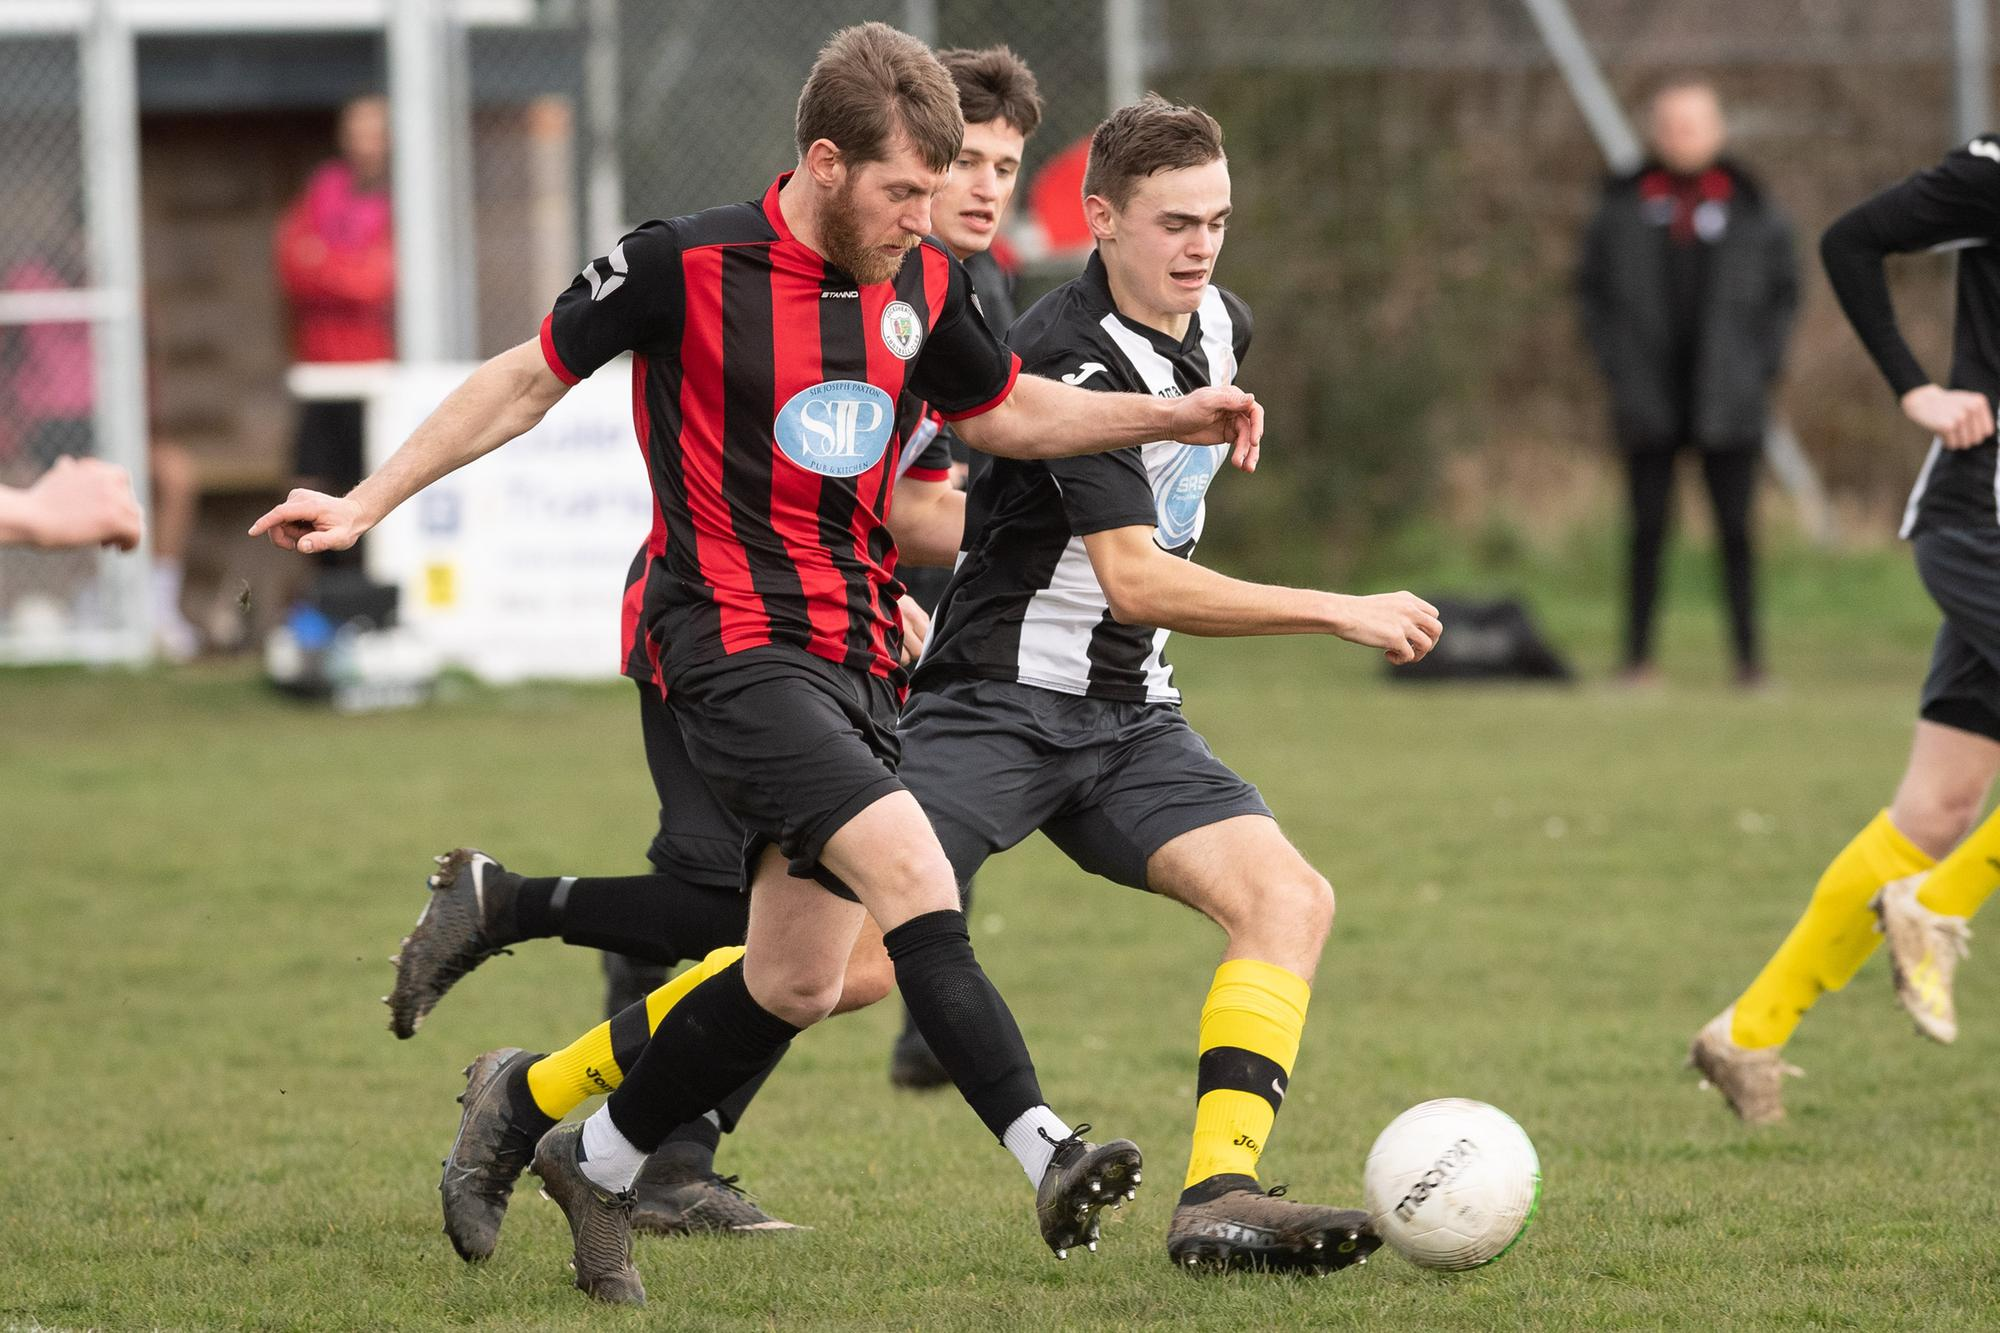 Locks Heath end the last remaining Hampshire Premier League 100 per cent record with entertaining 3-3 draw against Paulsgrove